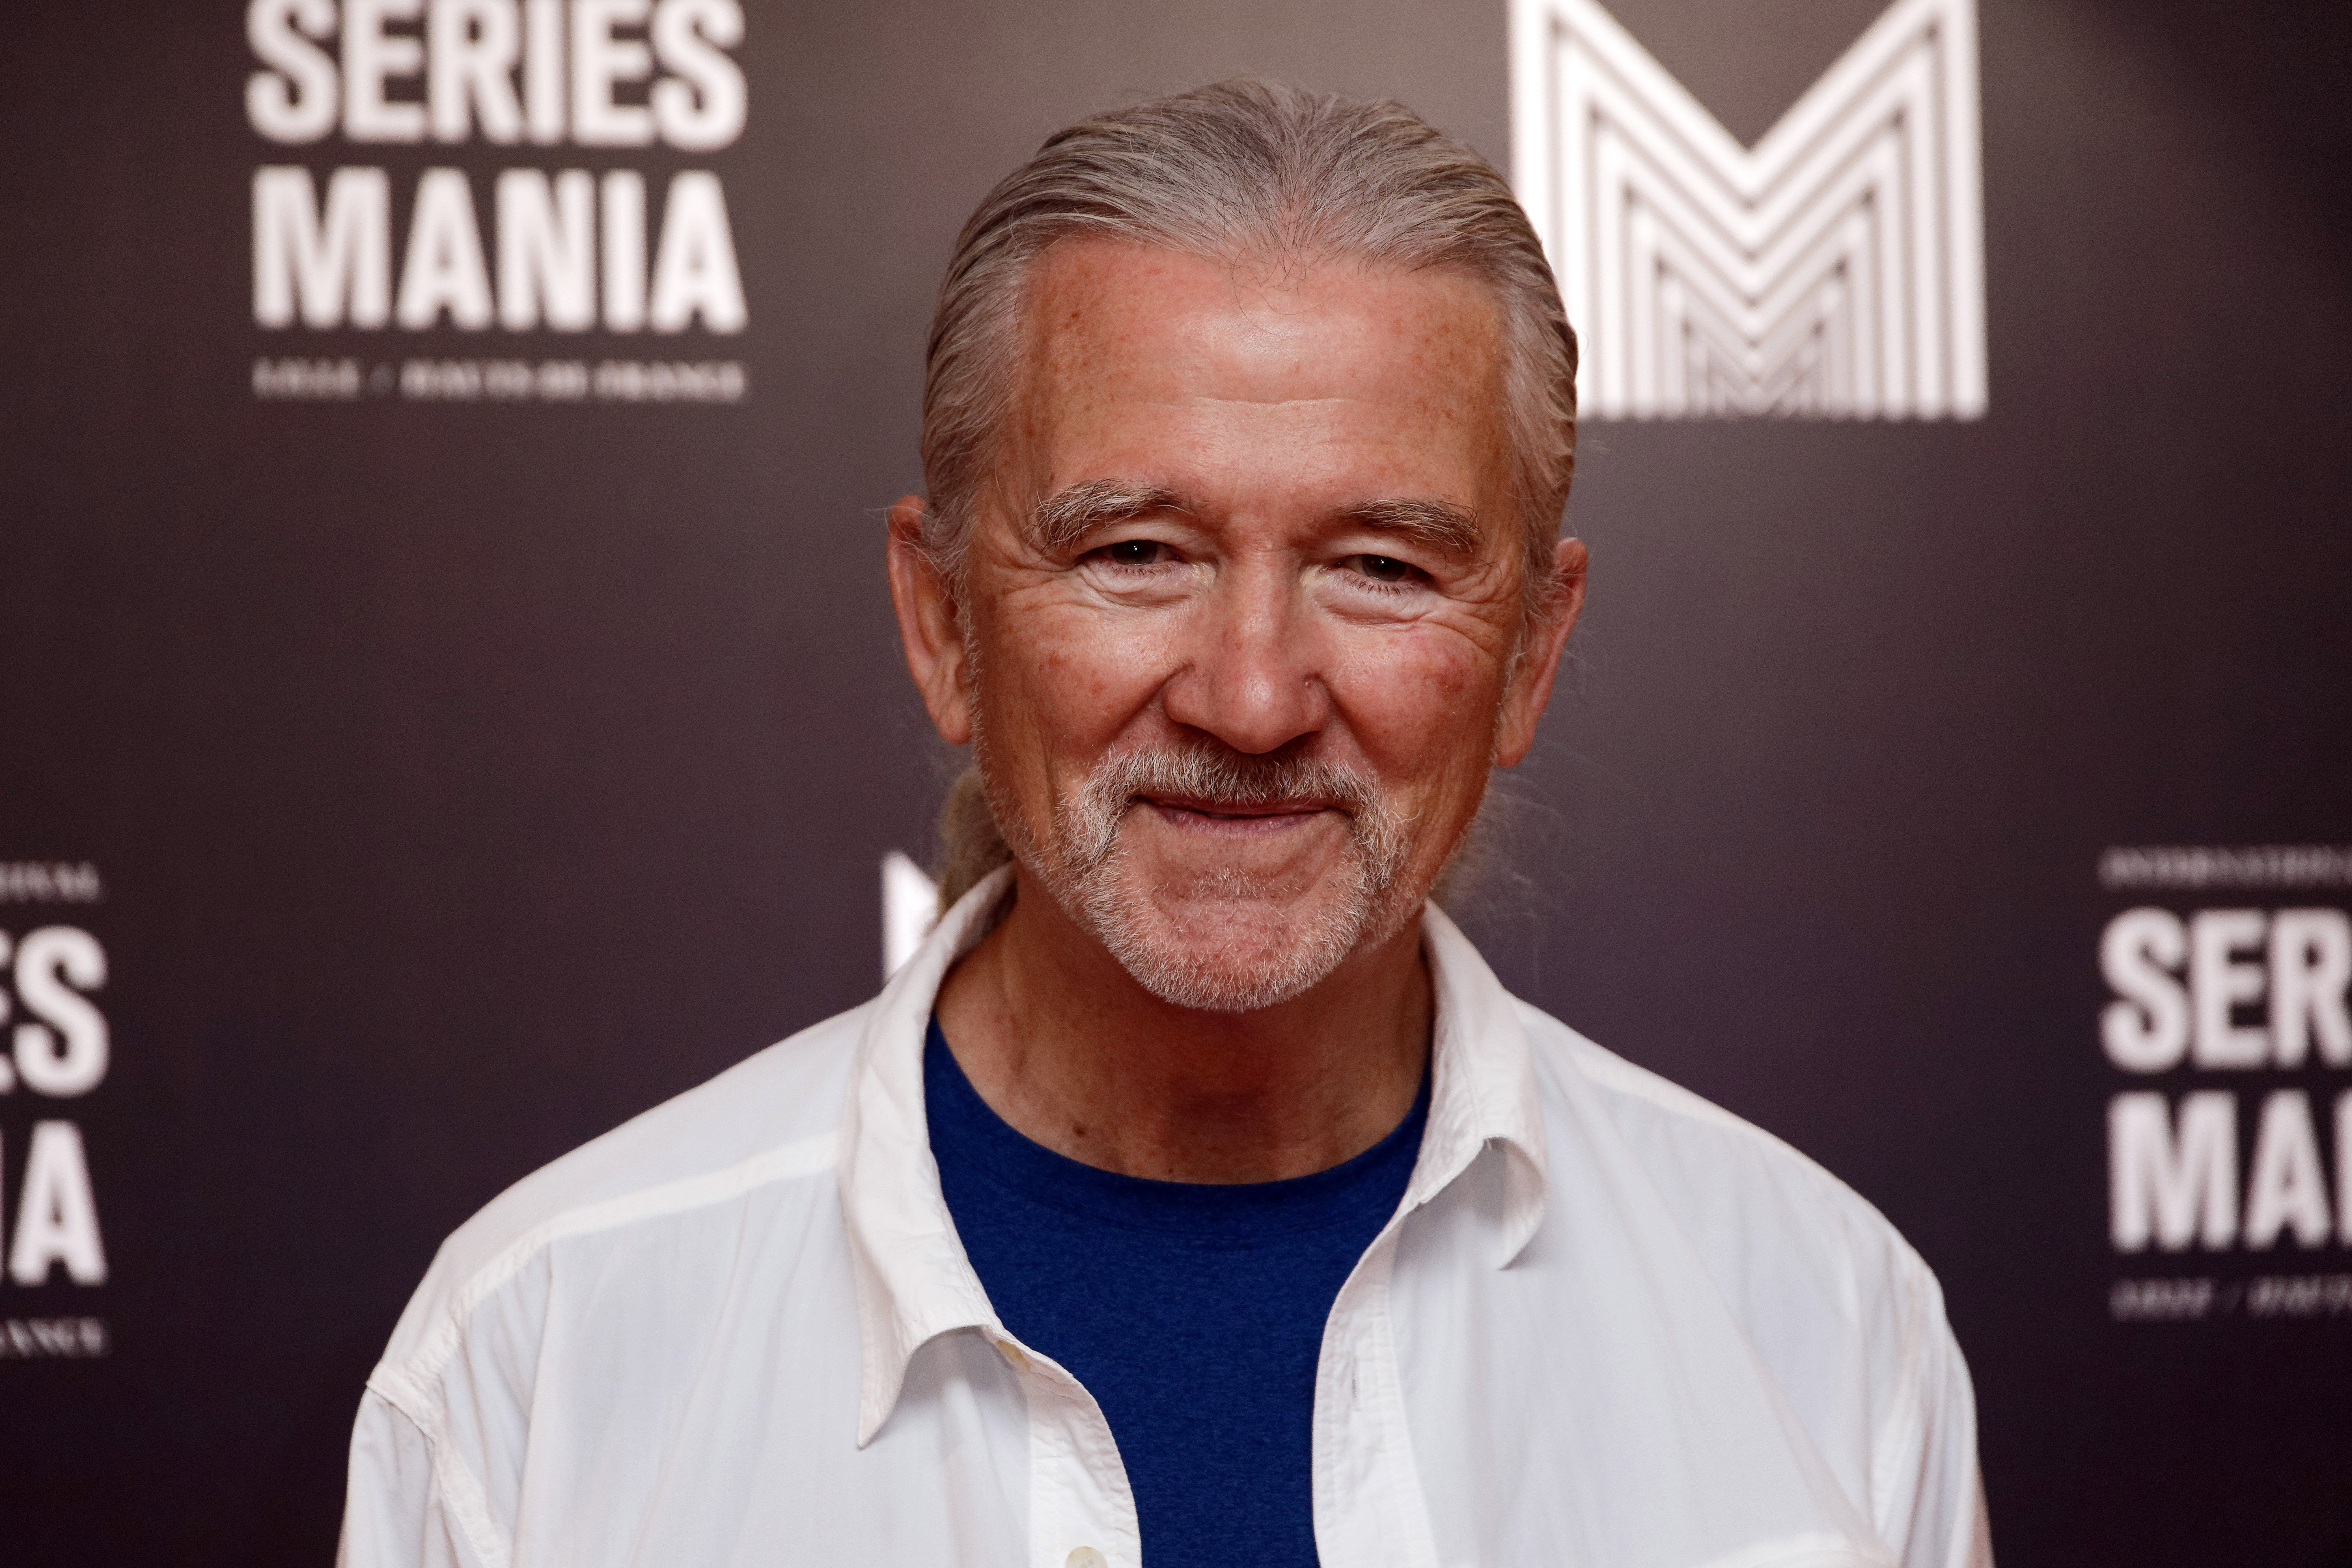 Patrick Duffy on May 2, 2018 in Lille, France. | Source: Getty Images